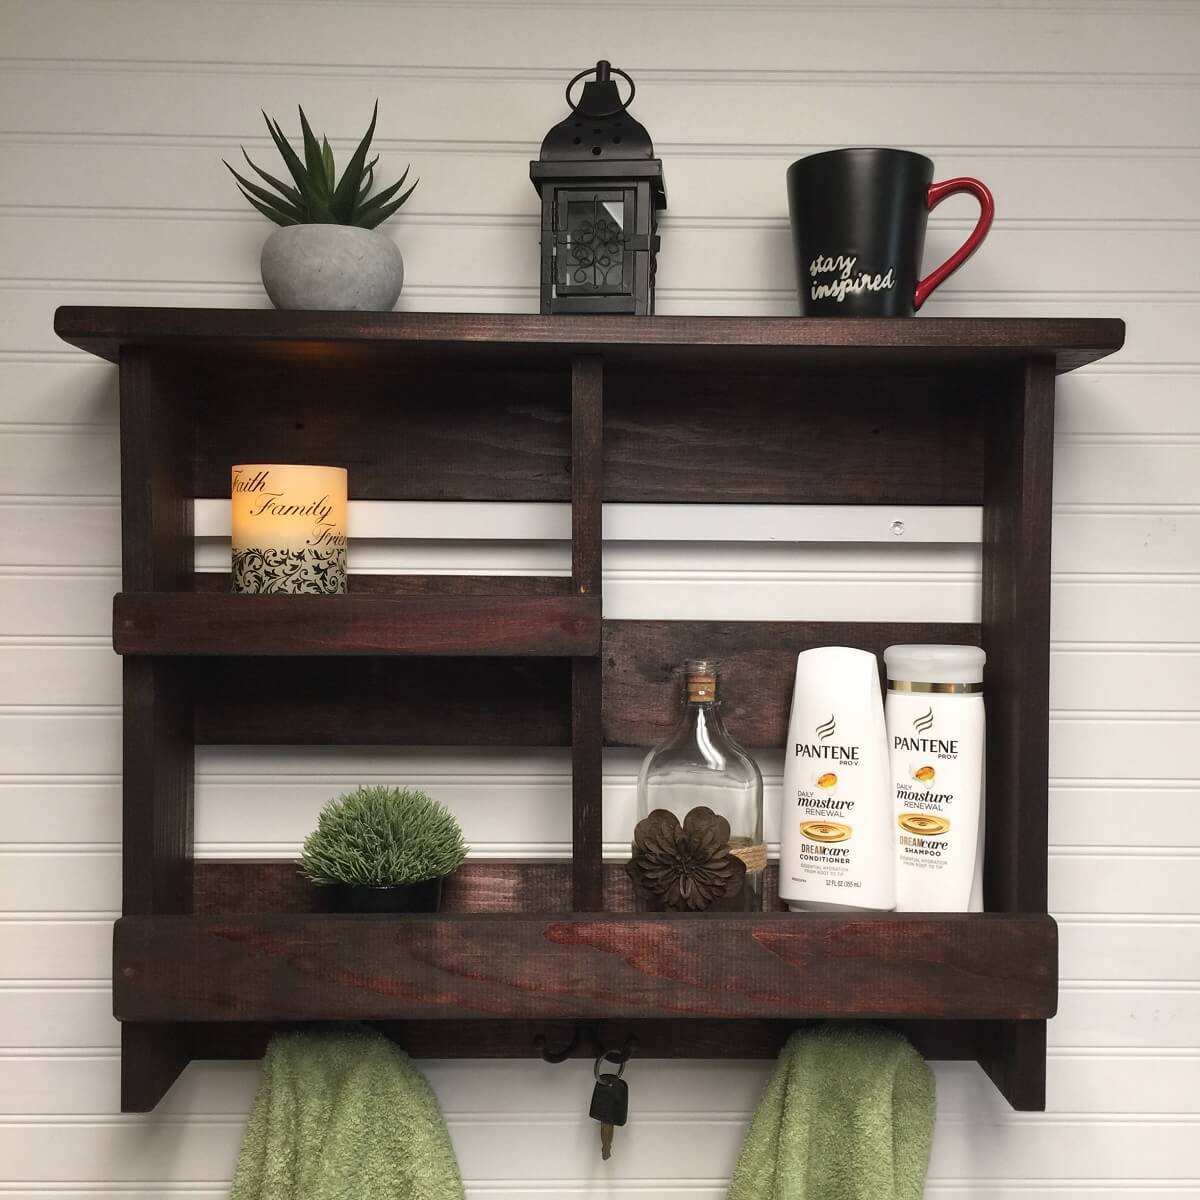 Rustic Bathroom Shelf Organizer